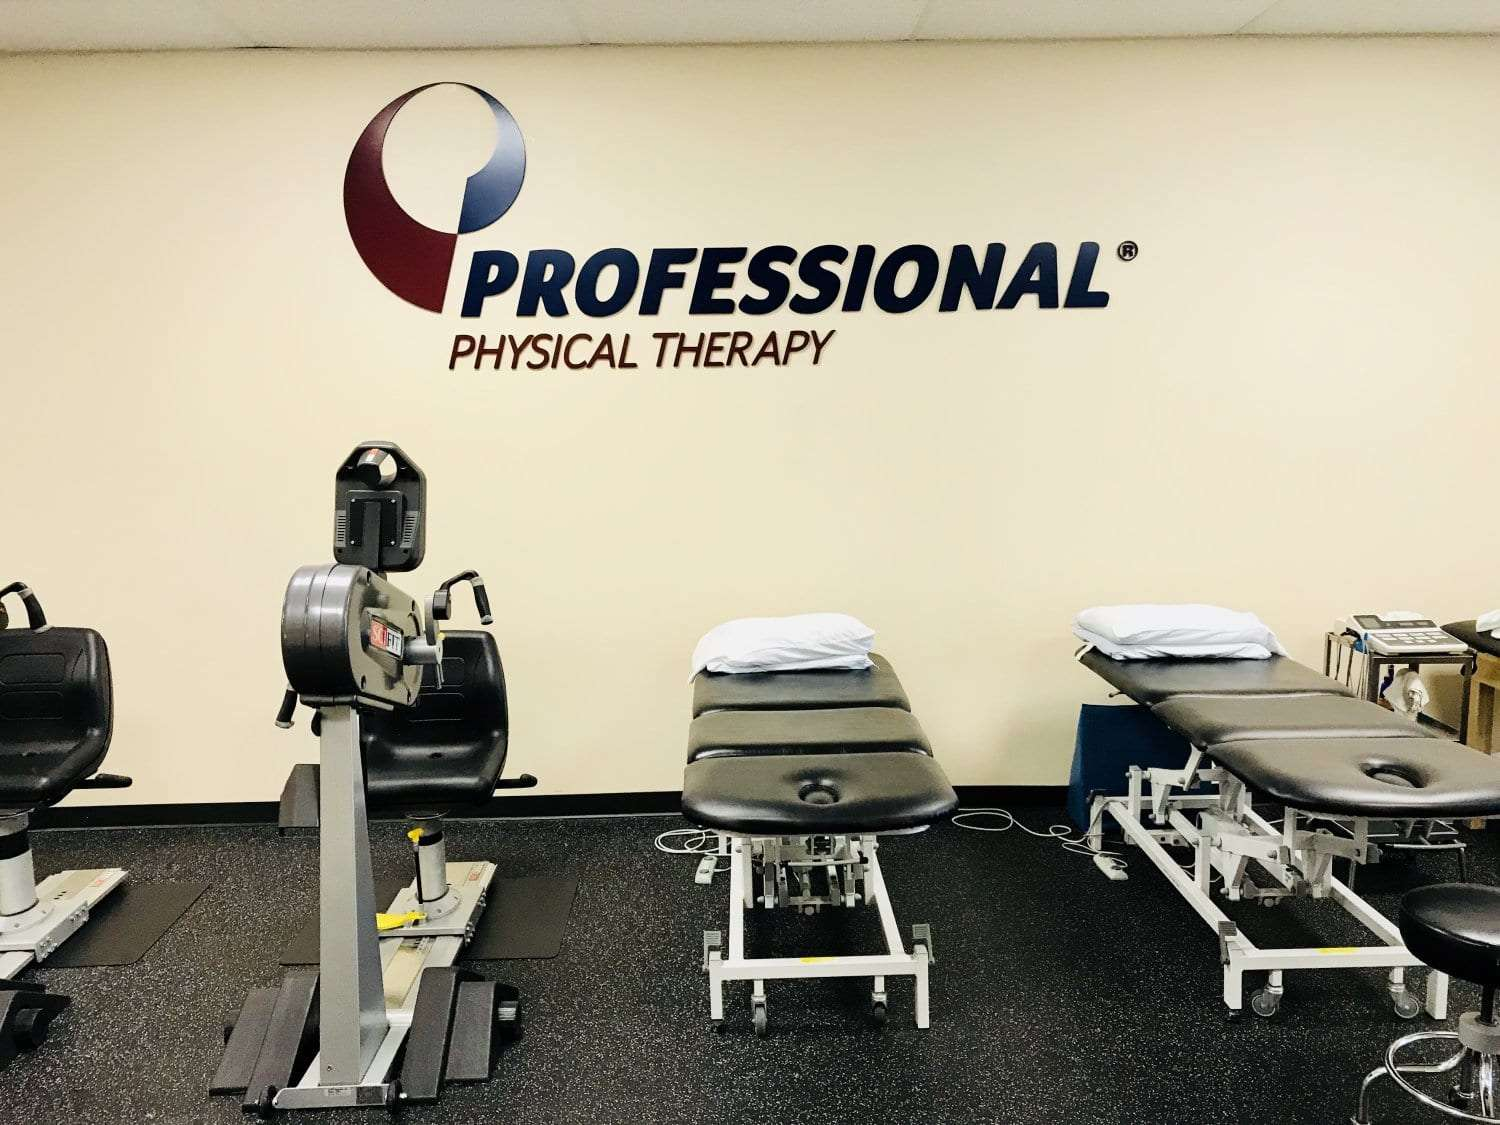 Here is an image of the beds and equipment at our Wayne, New Jersey physical therapy clinic.